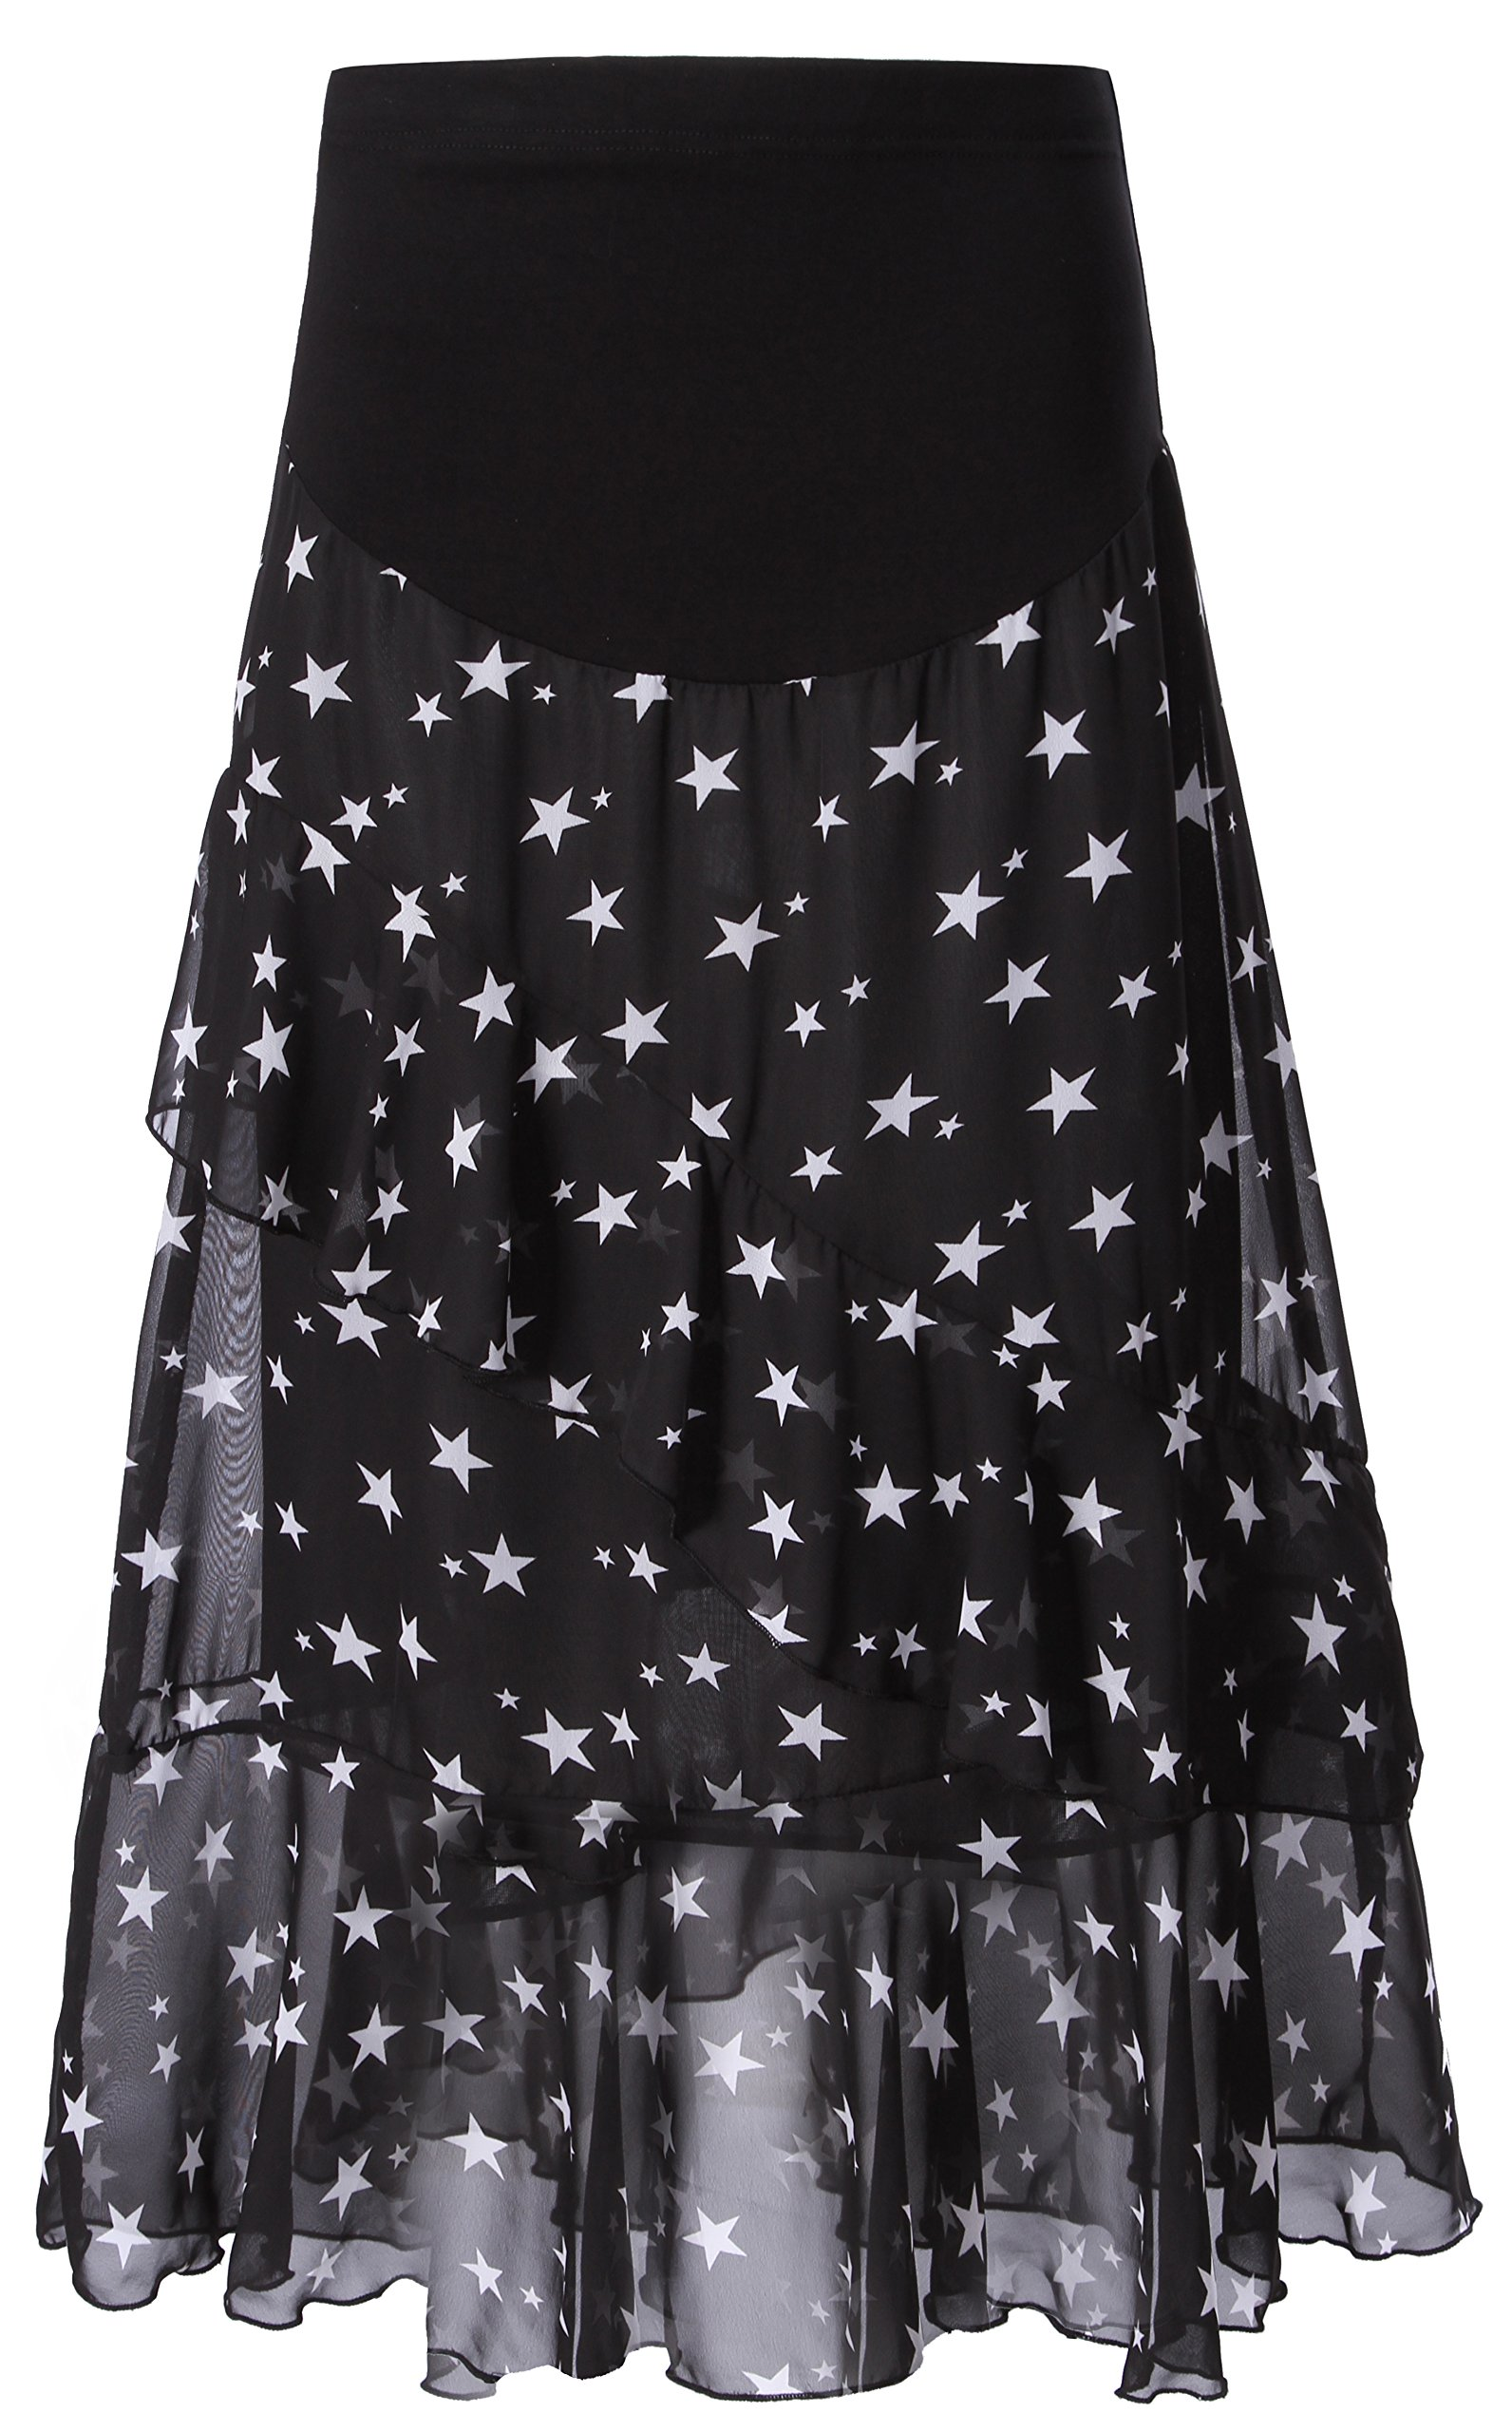 Foucome Over Belly Printed Maternity Skirt High Waist Flowy High Low Chiffon Skirt for Women Black by Foucome (Image #1)